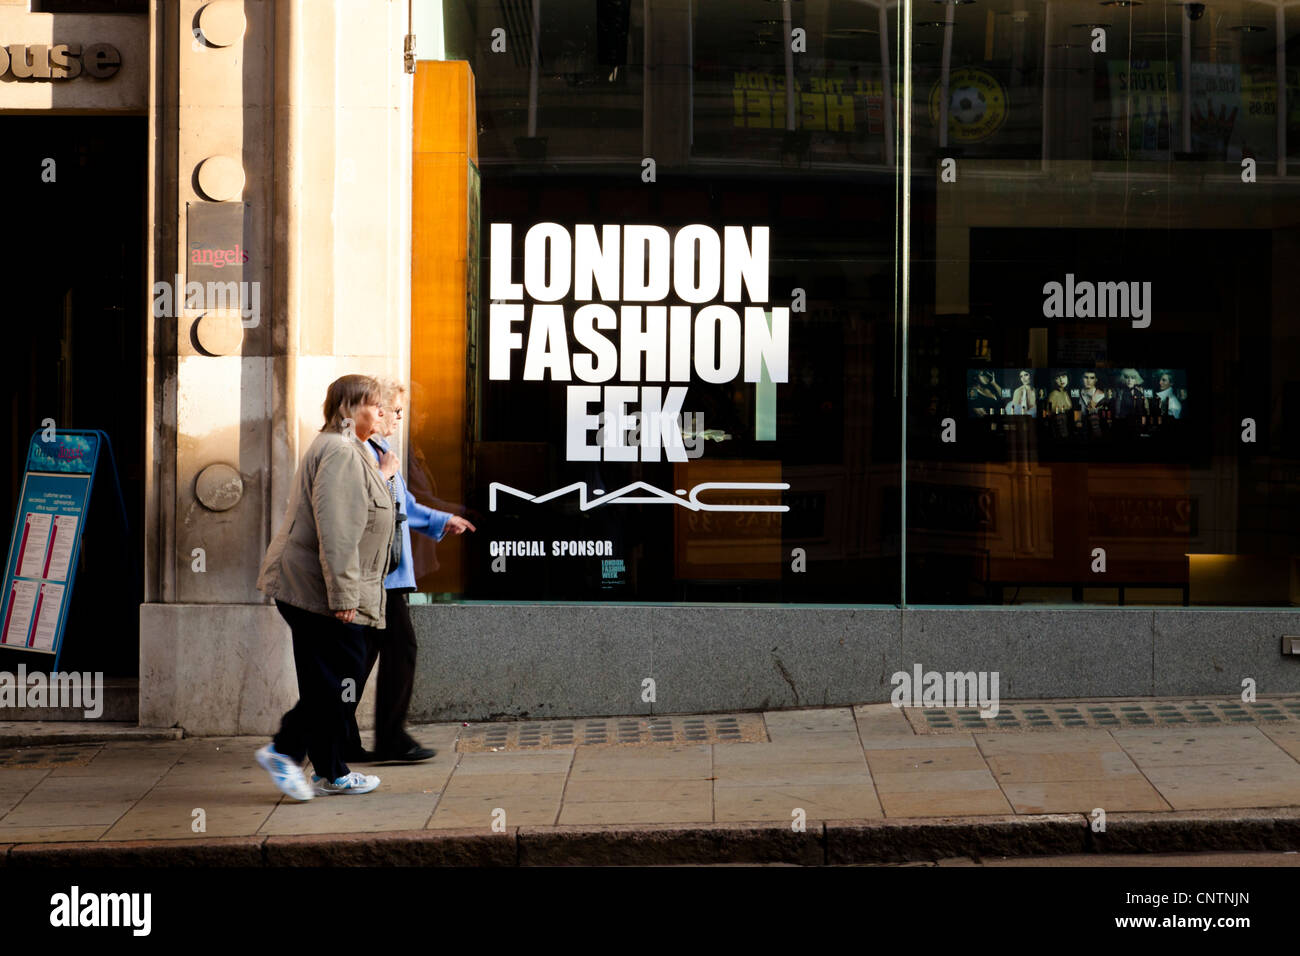 Humourous view of London Fashion Week shop window misspelling with two women shoppers and several models on a tv - Stock Image